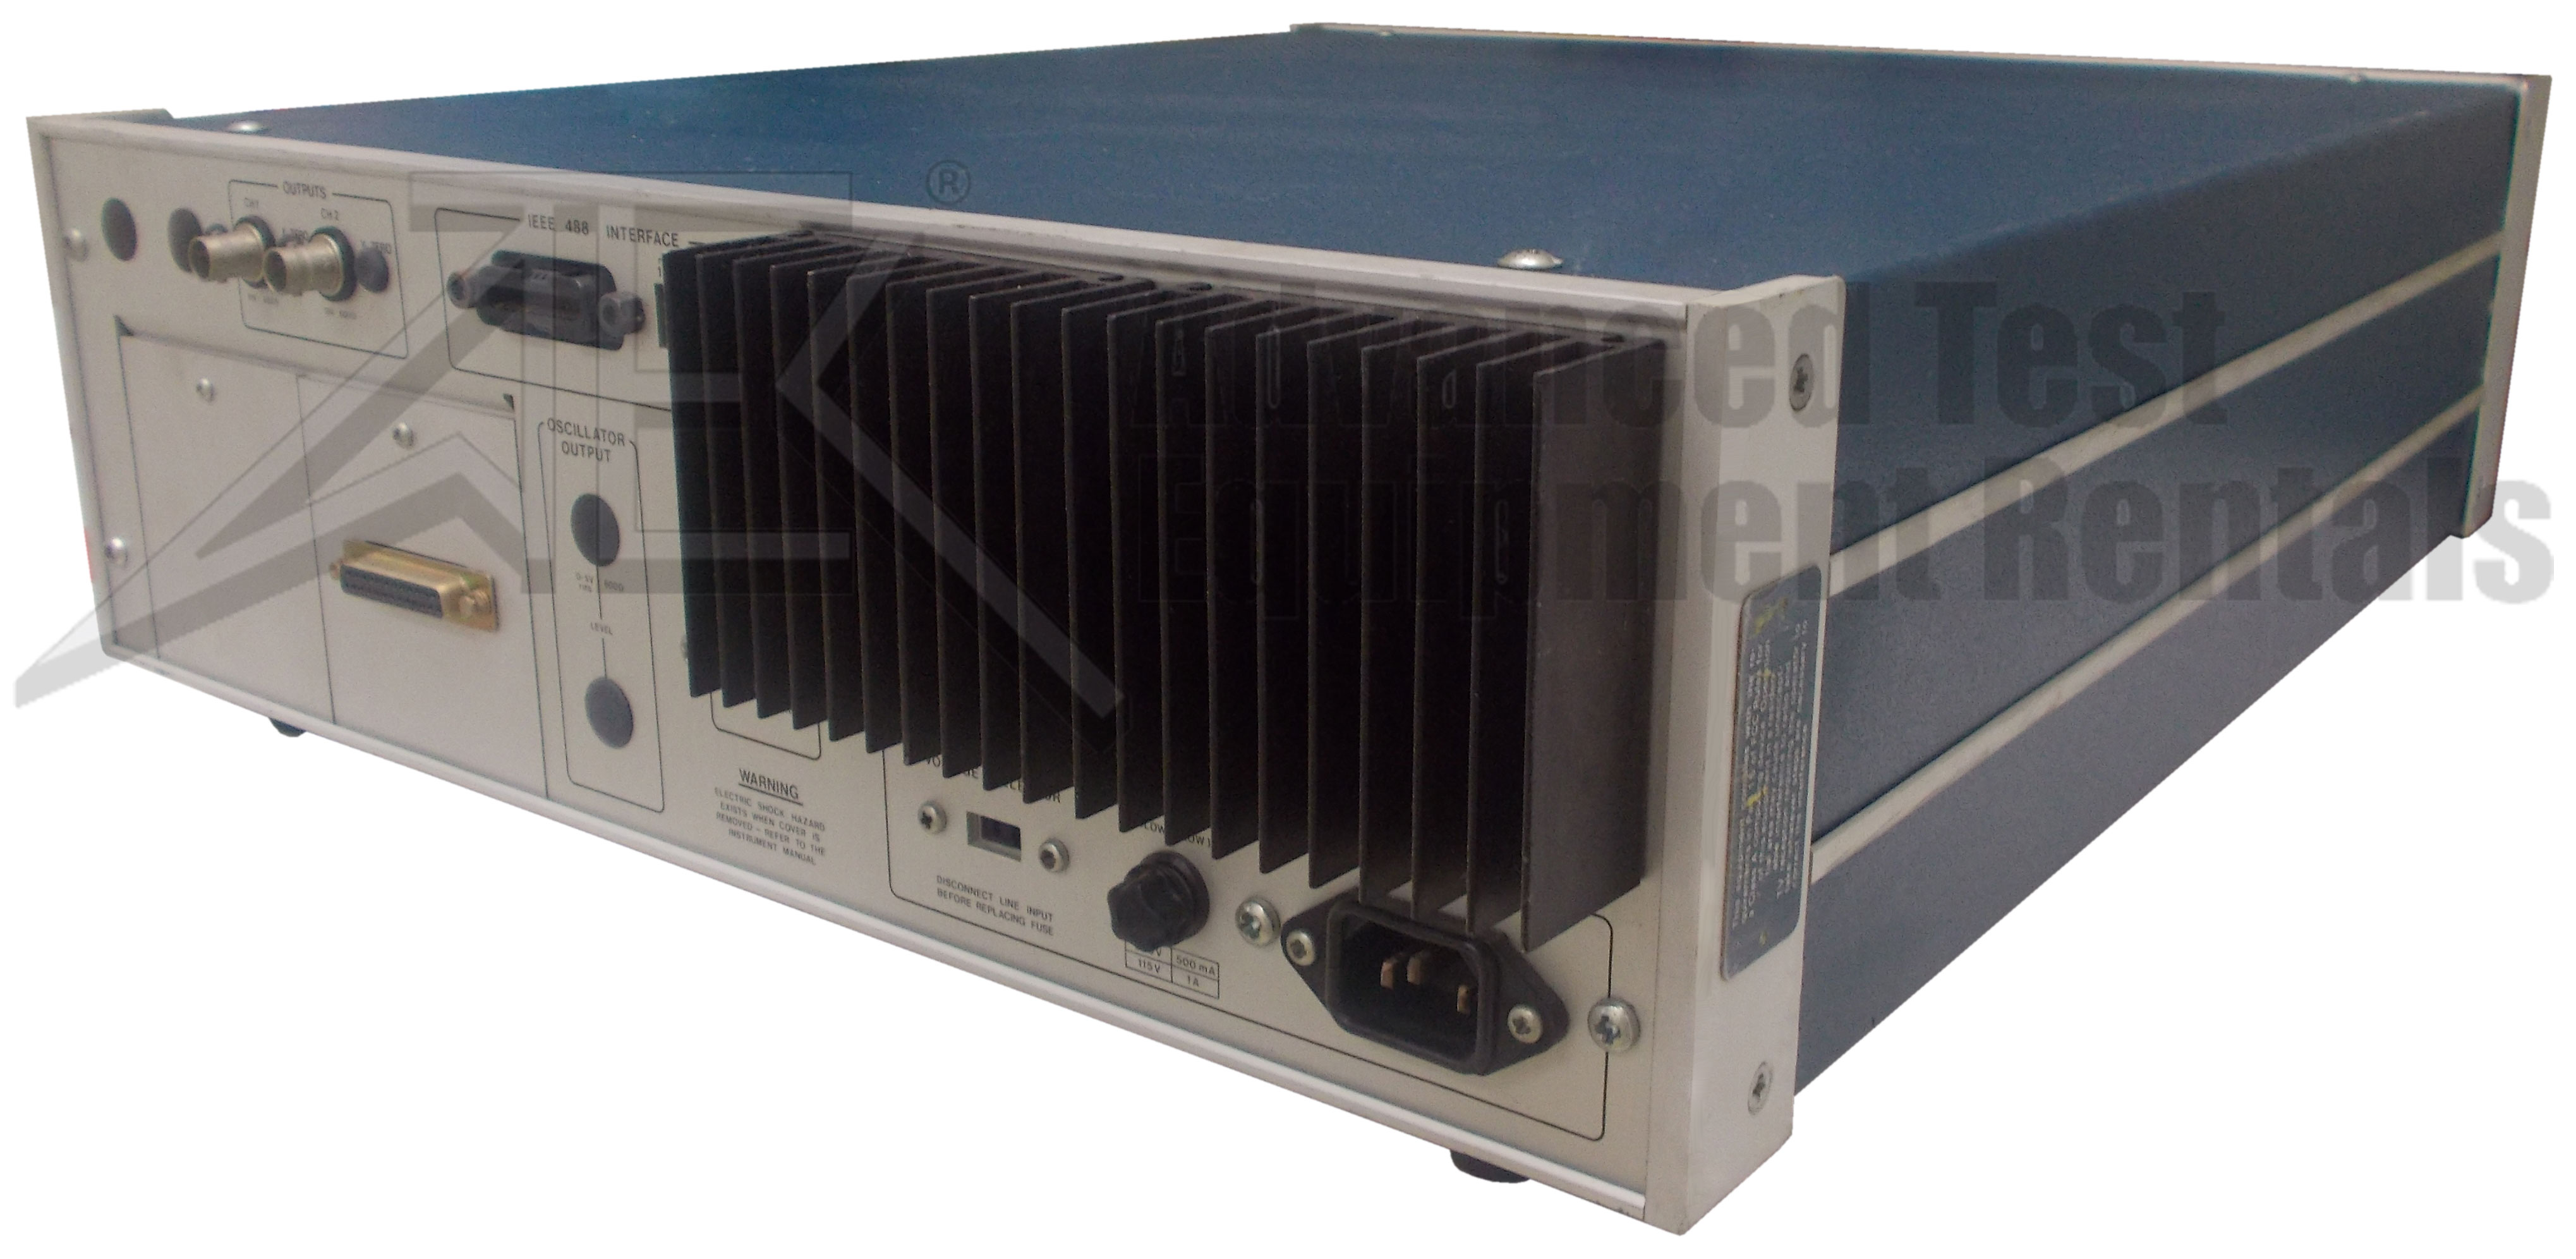 EG&G 5206 Lock-In Amplifier 200 Hz - 200 kHz